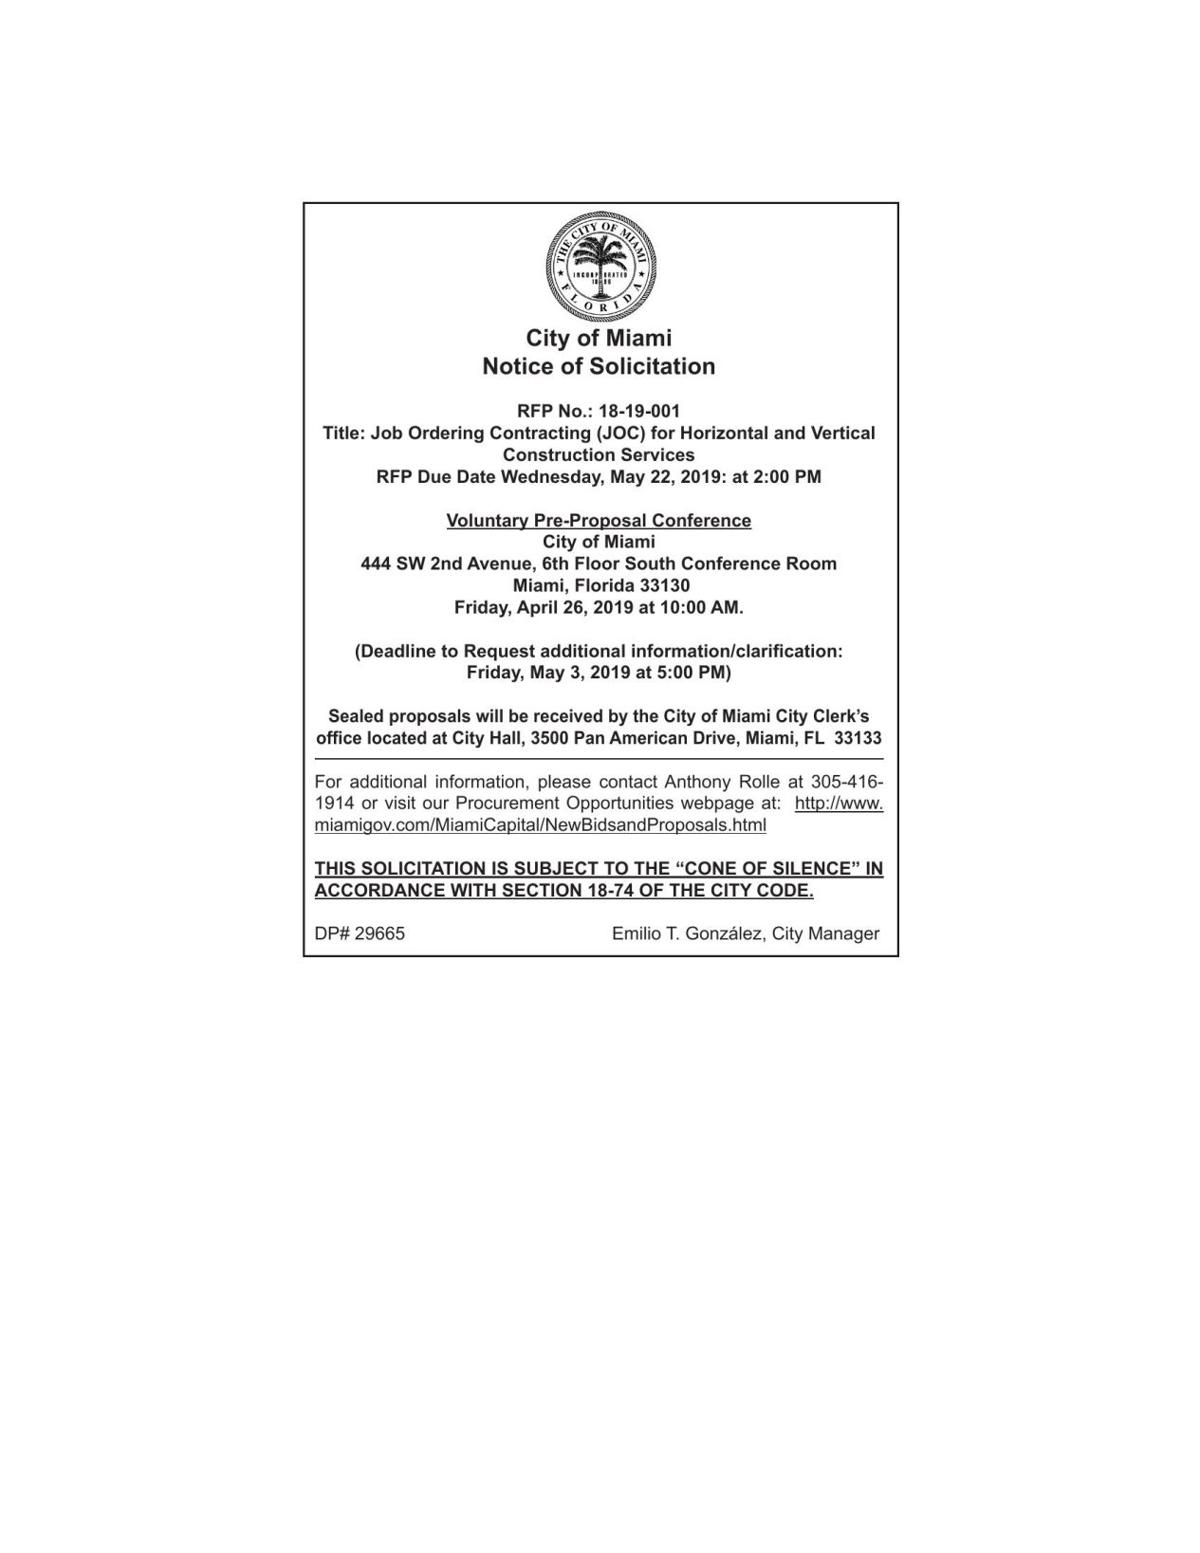 City of Miami Notice of Solicitation 18-19-001